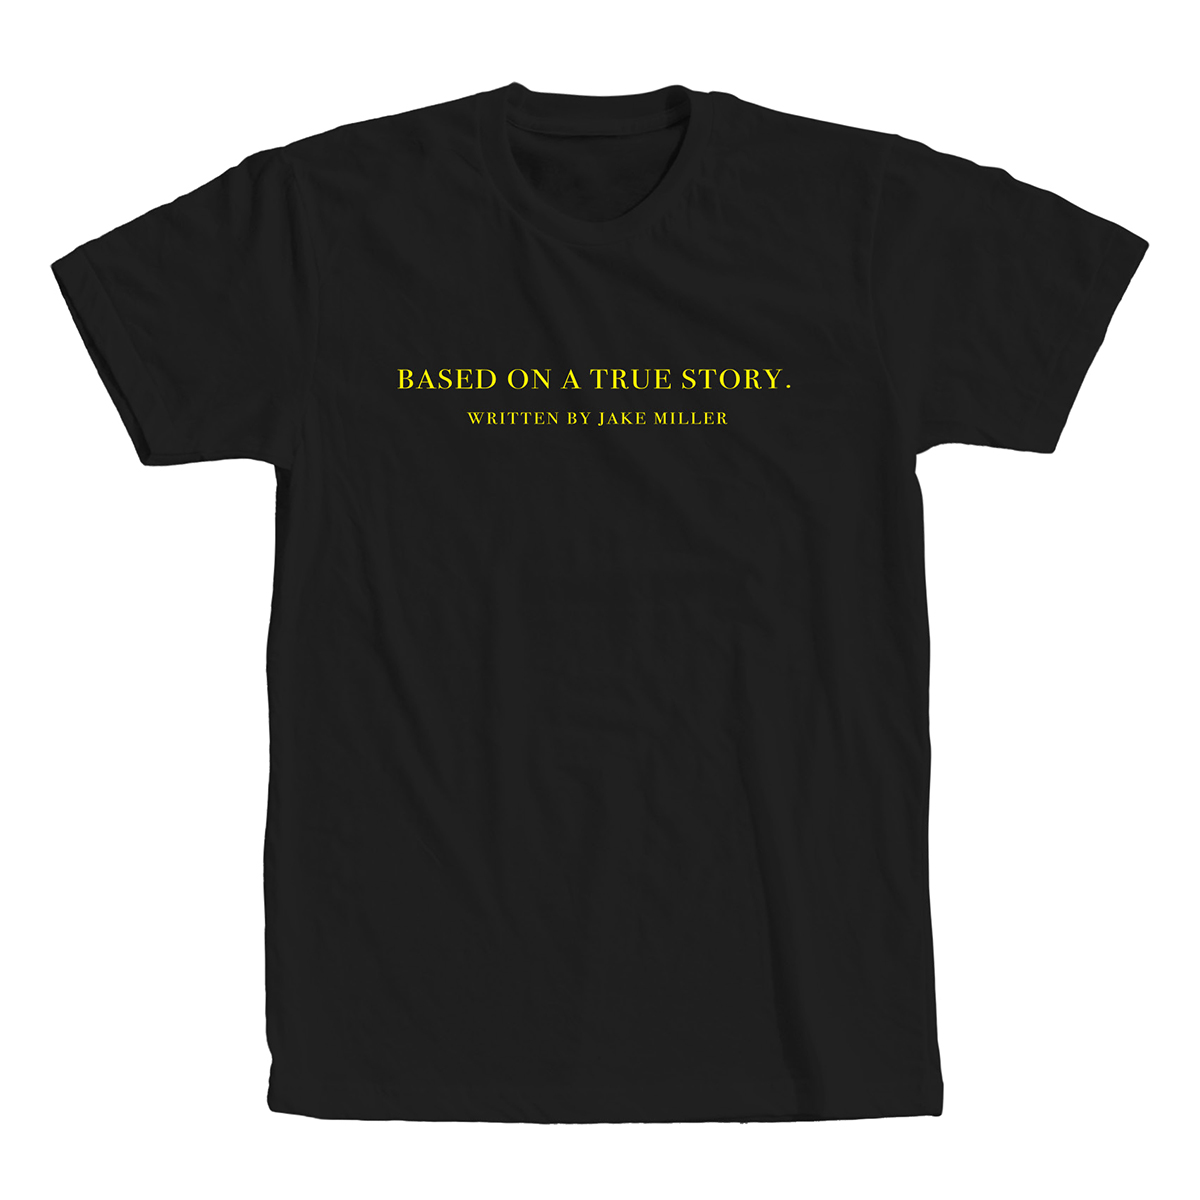 BASED ON A TRUE STORY. T-SHIRT